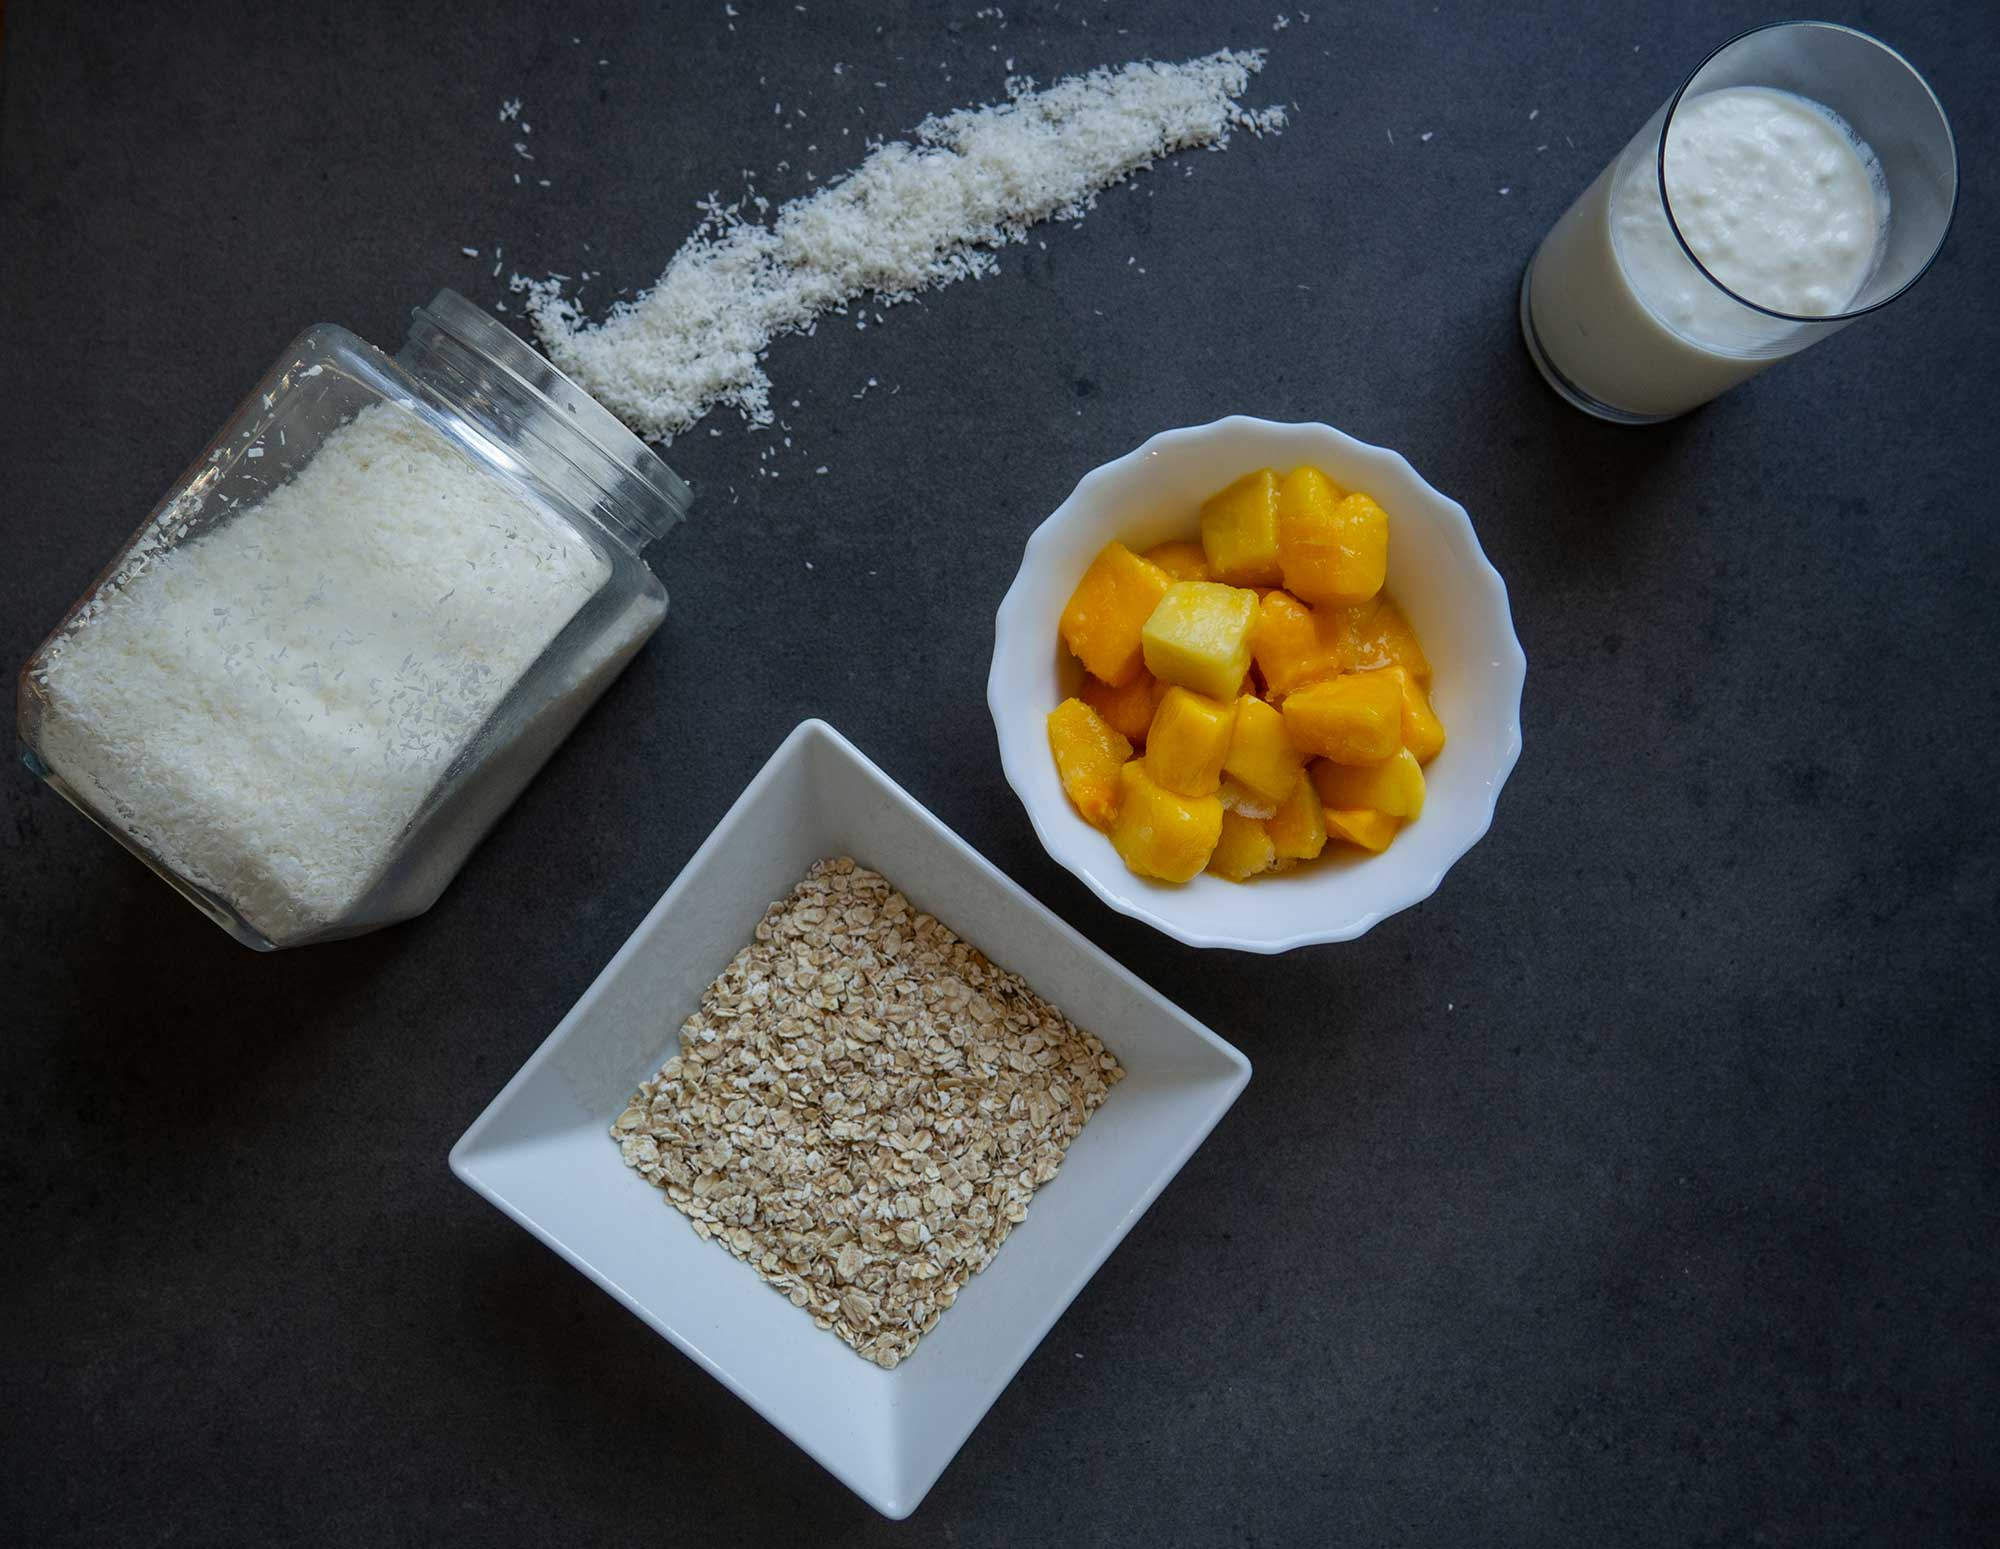 mango, oat flakes, coconut flakes, natural yogurt